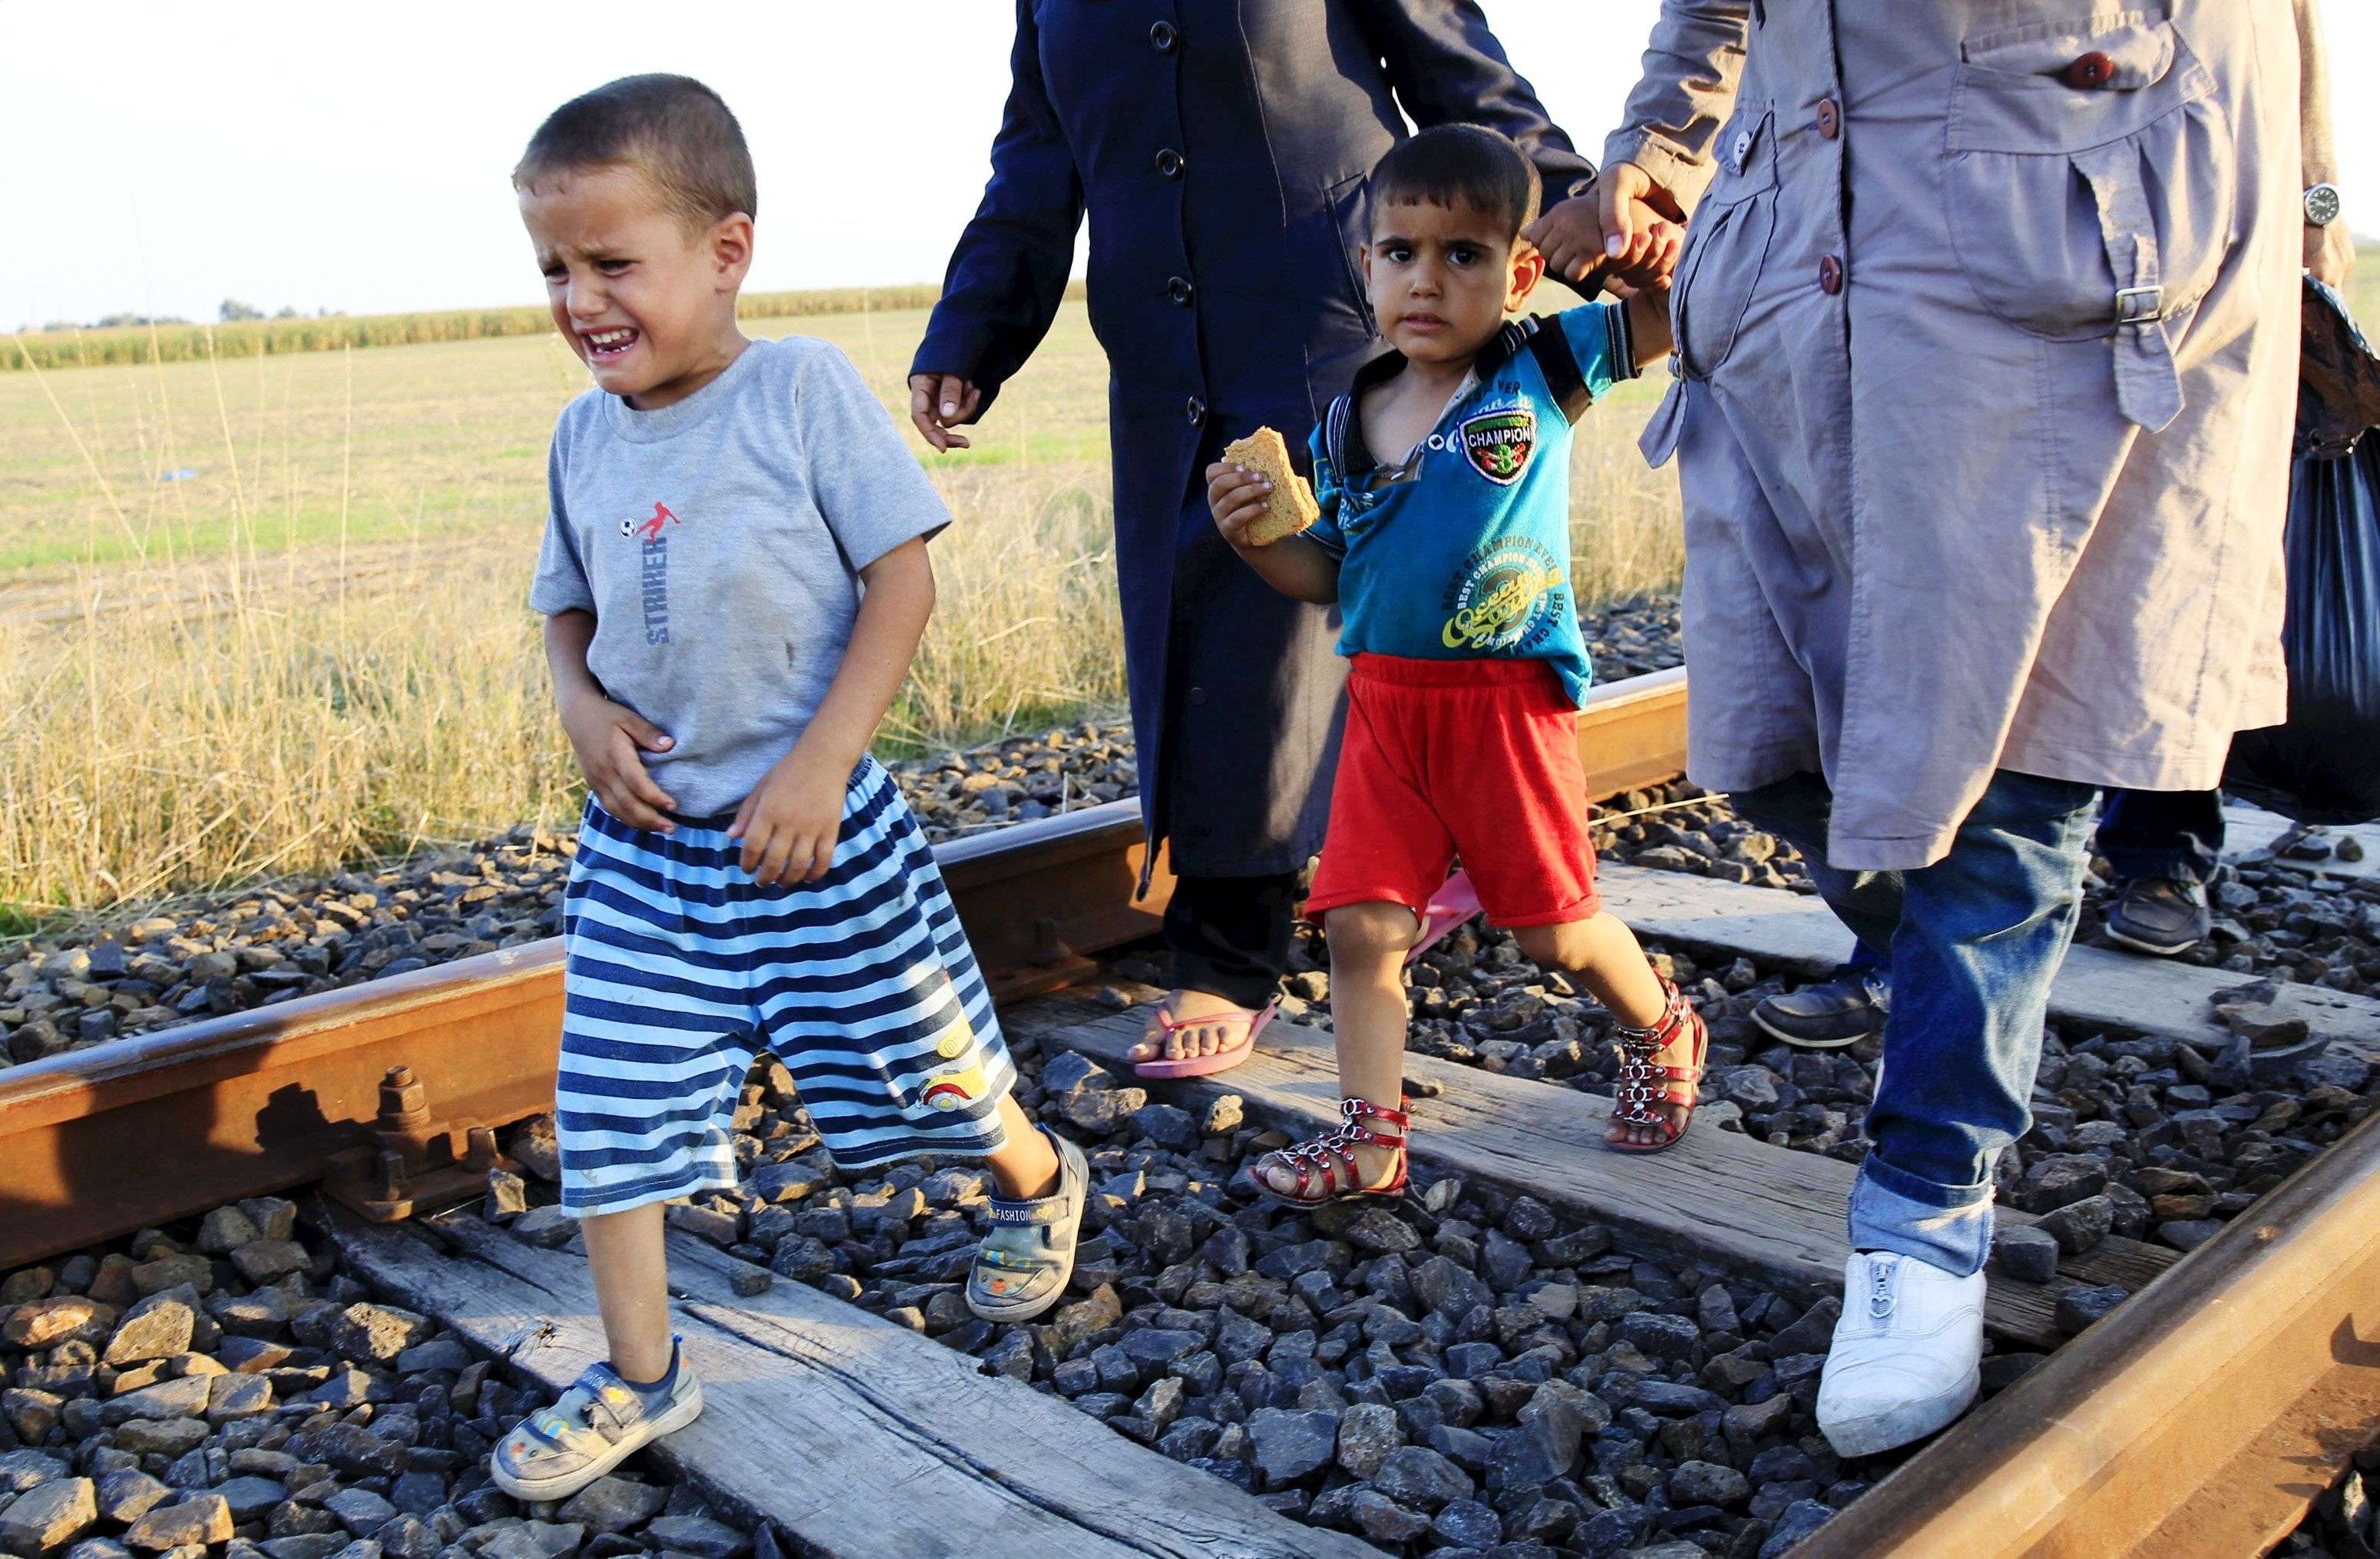 A migrant boy cries as he walks on a railway track after he crossed the Hungarian-Serbian border near Roszke. (REUTERS/Bernadett Szabo)